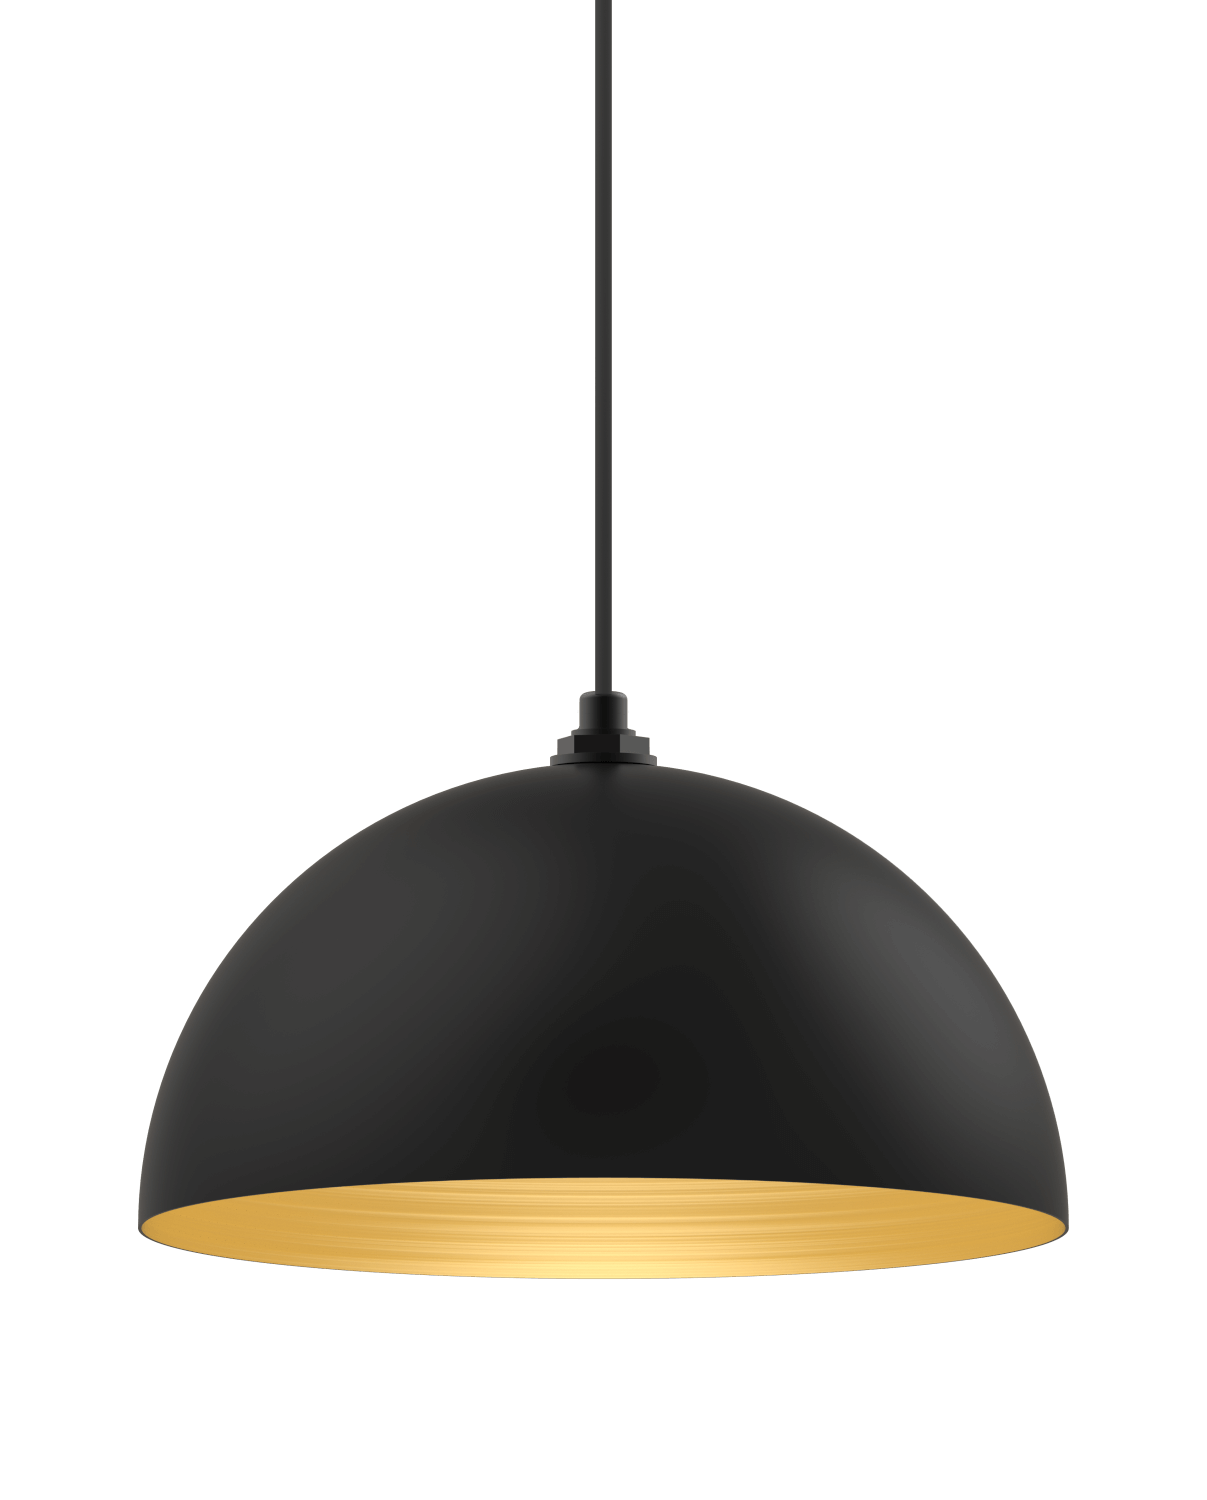 Gardena Residential Outdoor Wall Mounted Light Fixture in Black by Steel Lighting Co